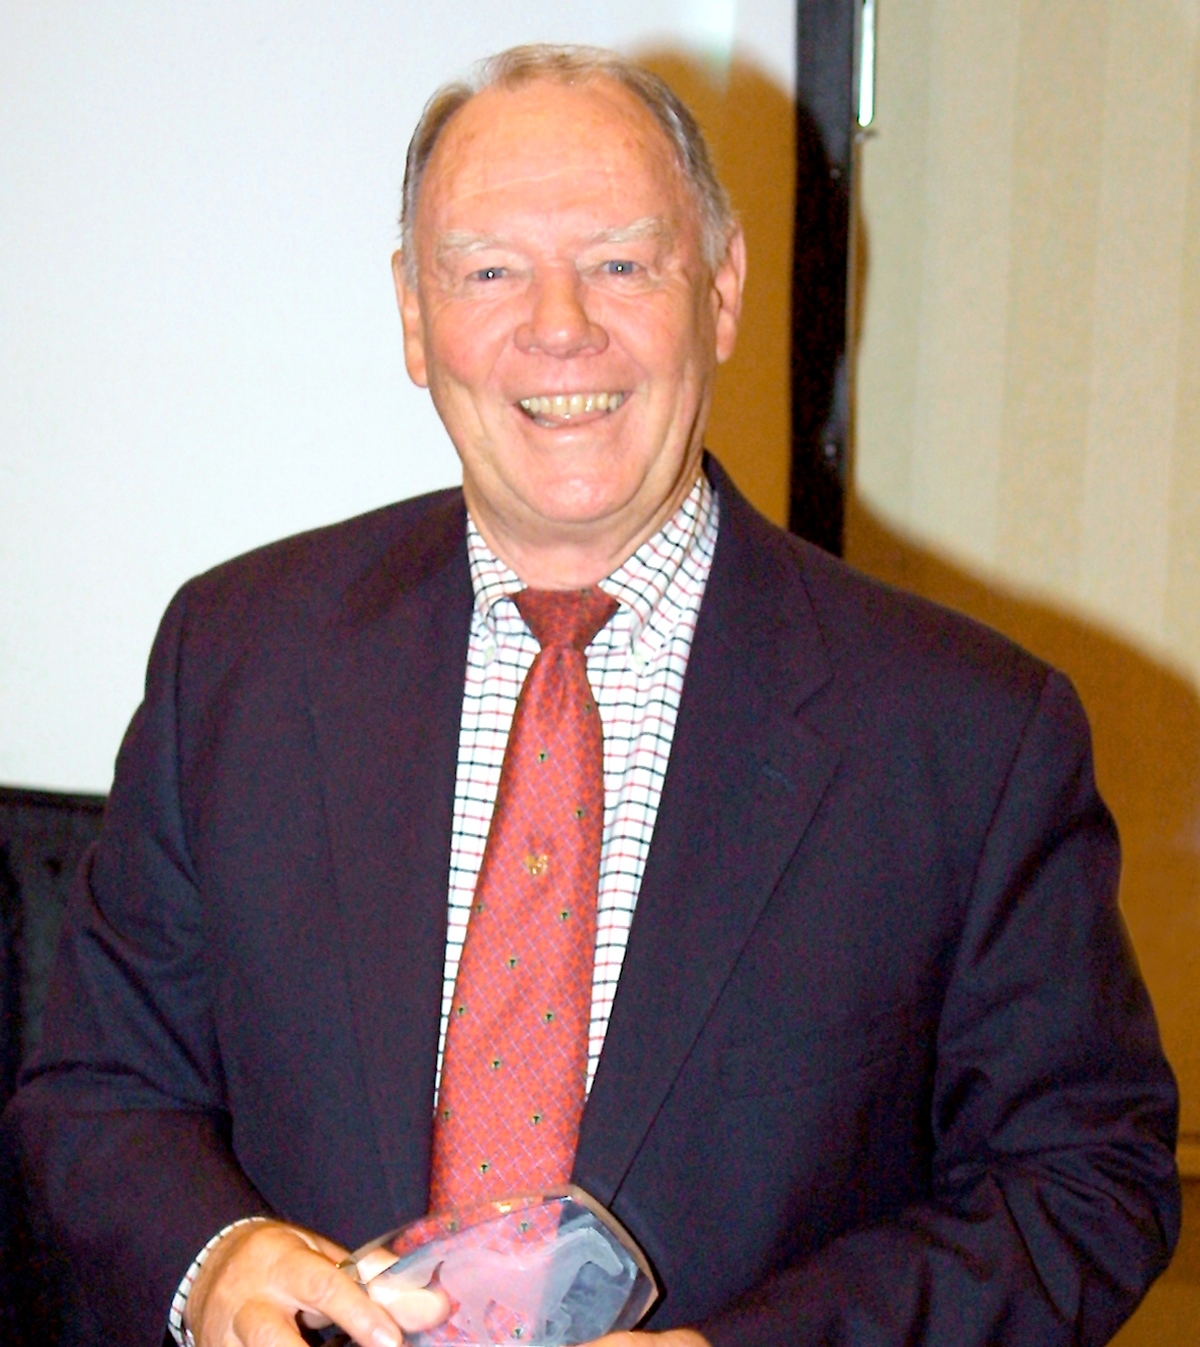 Second Annual Equine Industry Vision Award Given to Don Burt